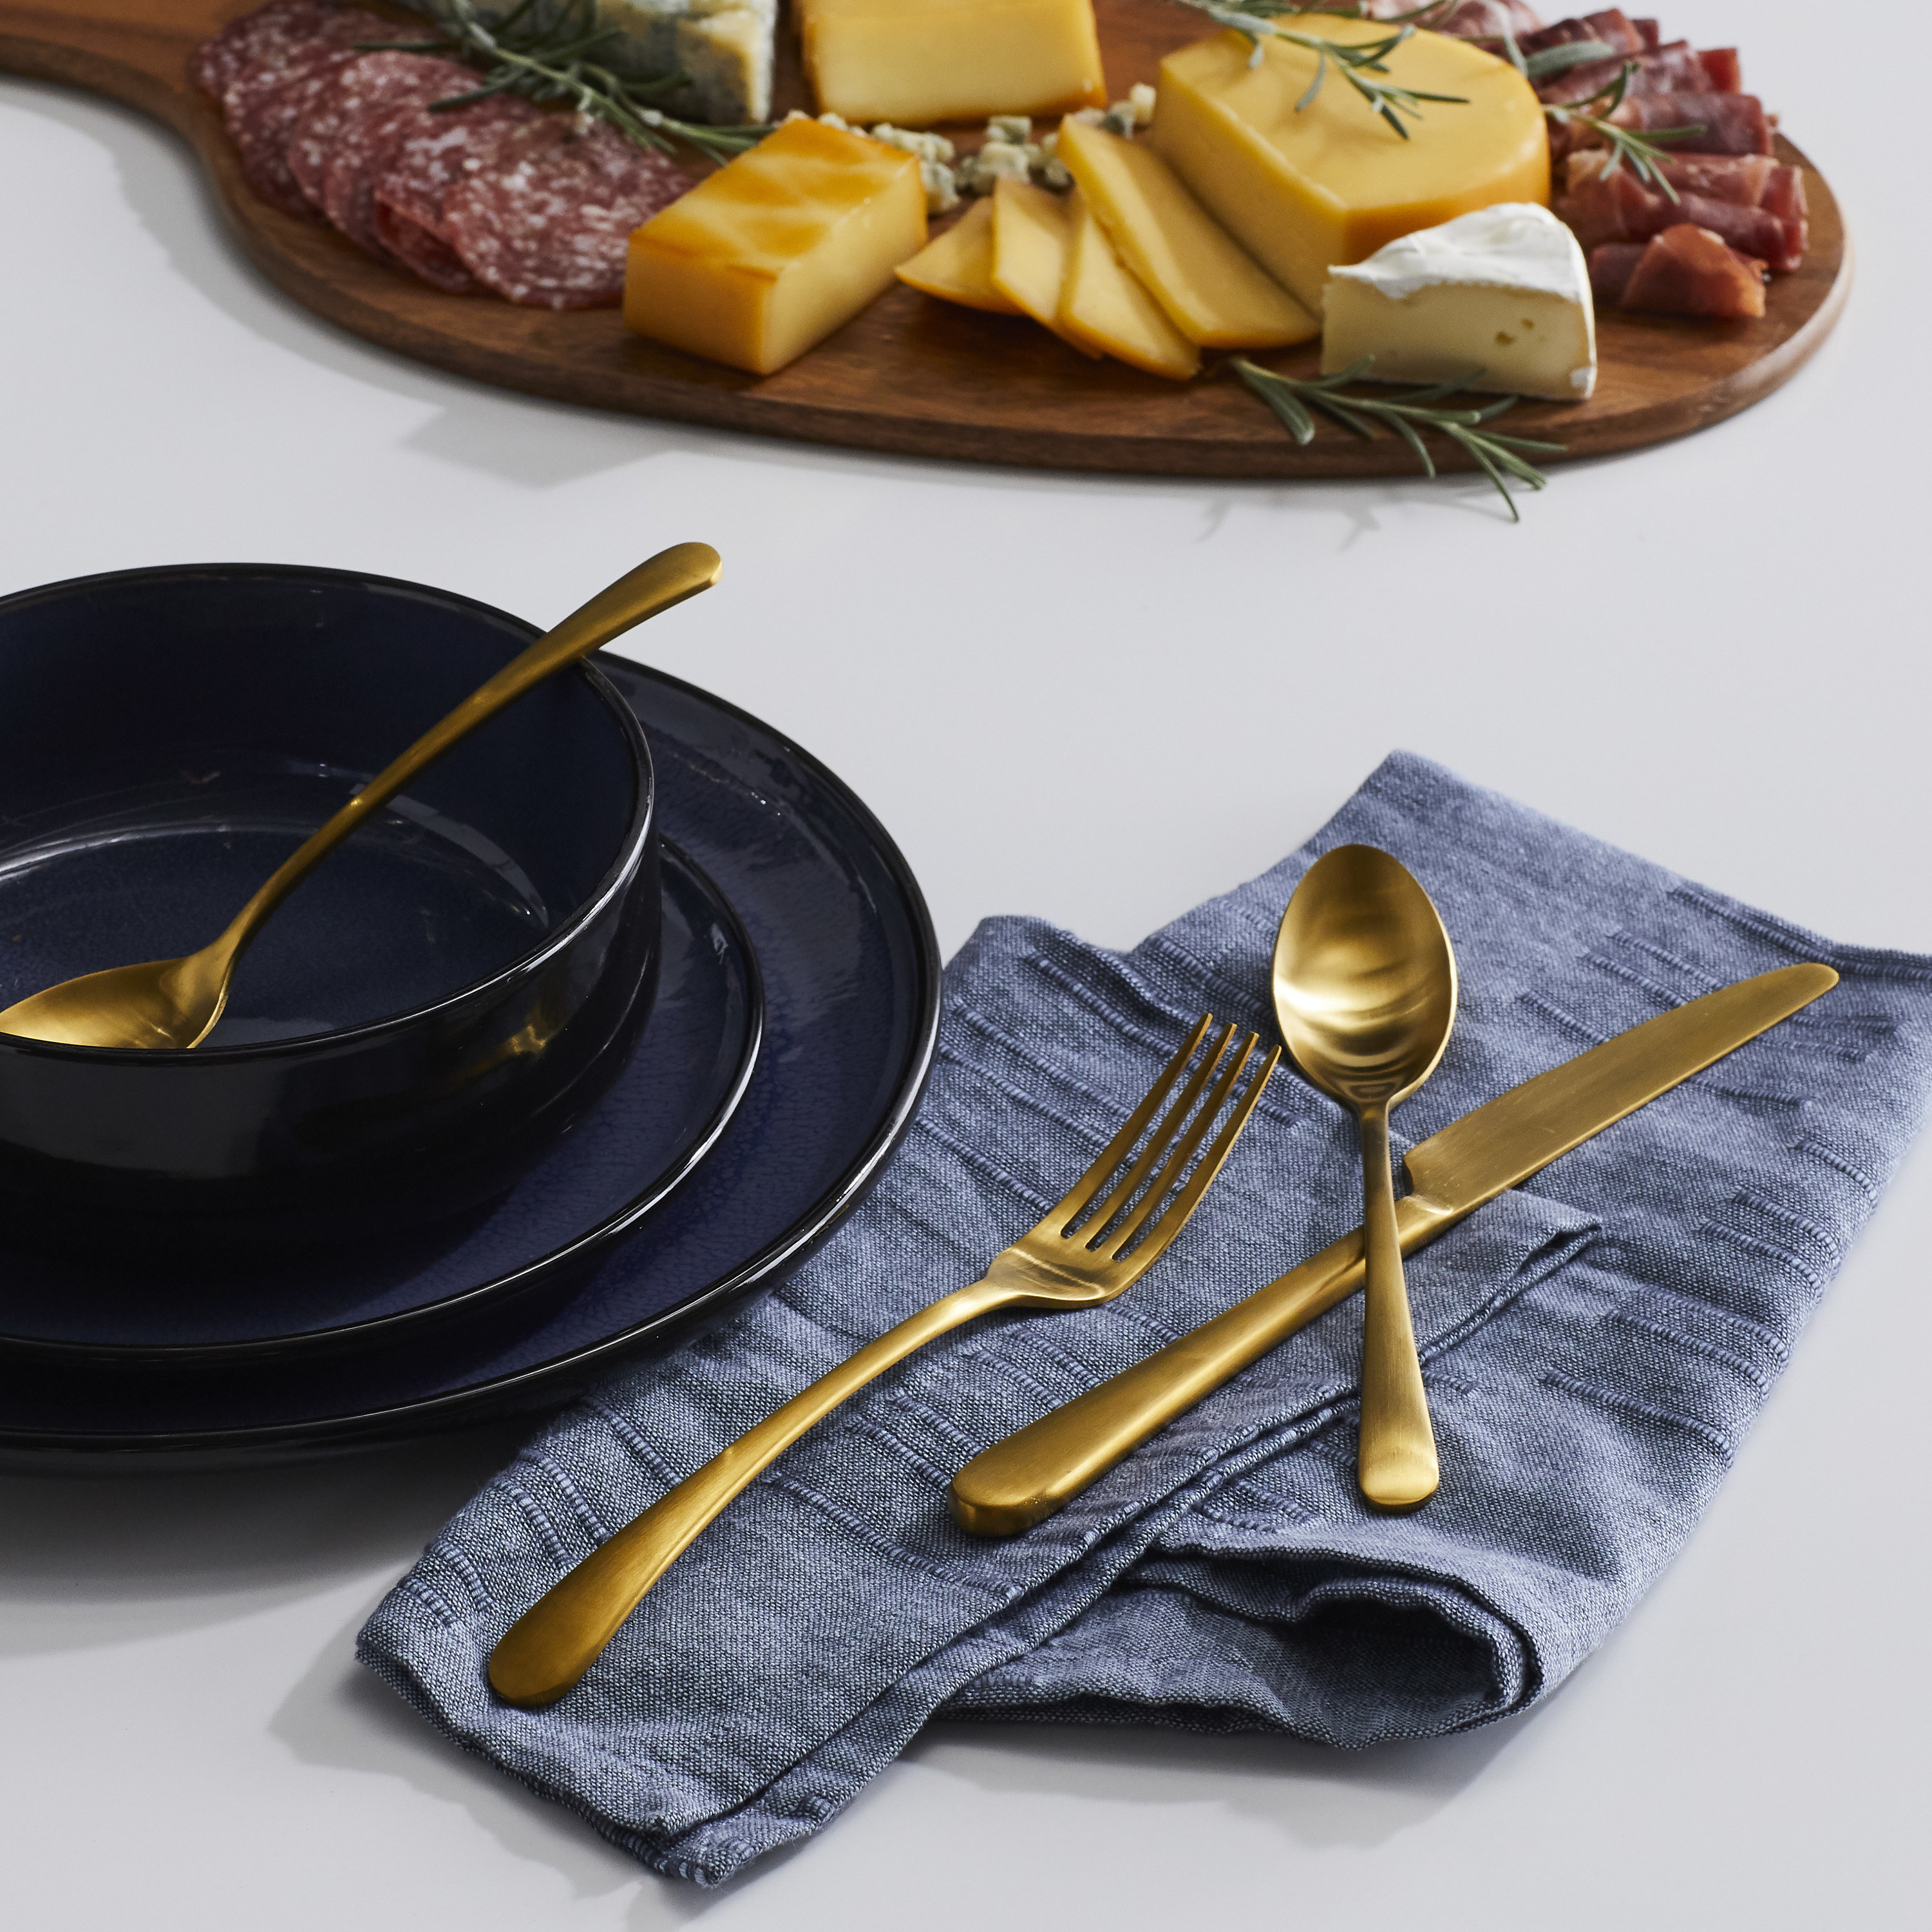 The gold flatware next to a charcuterie plate